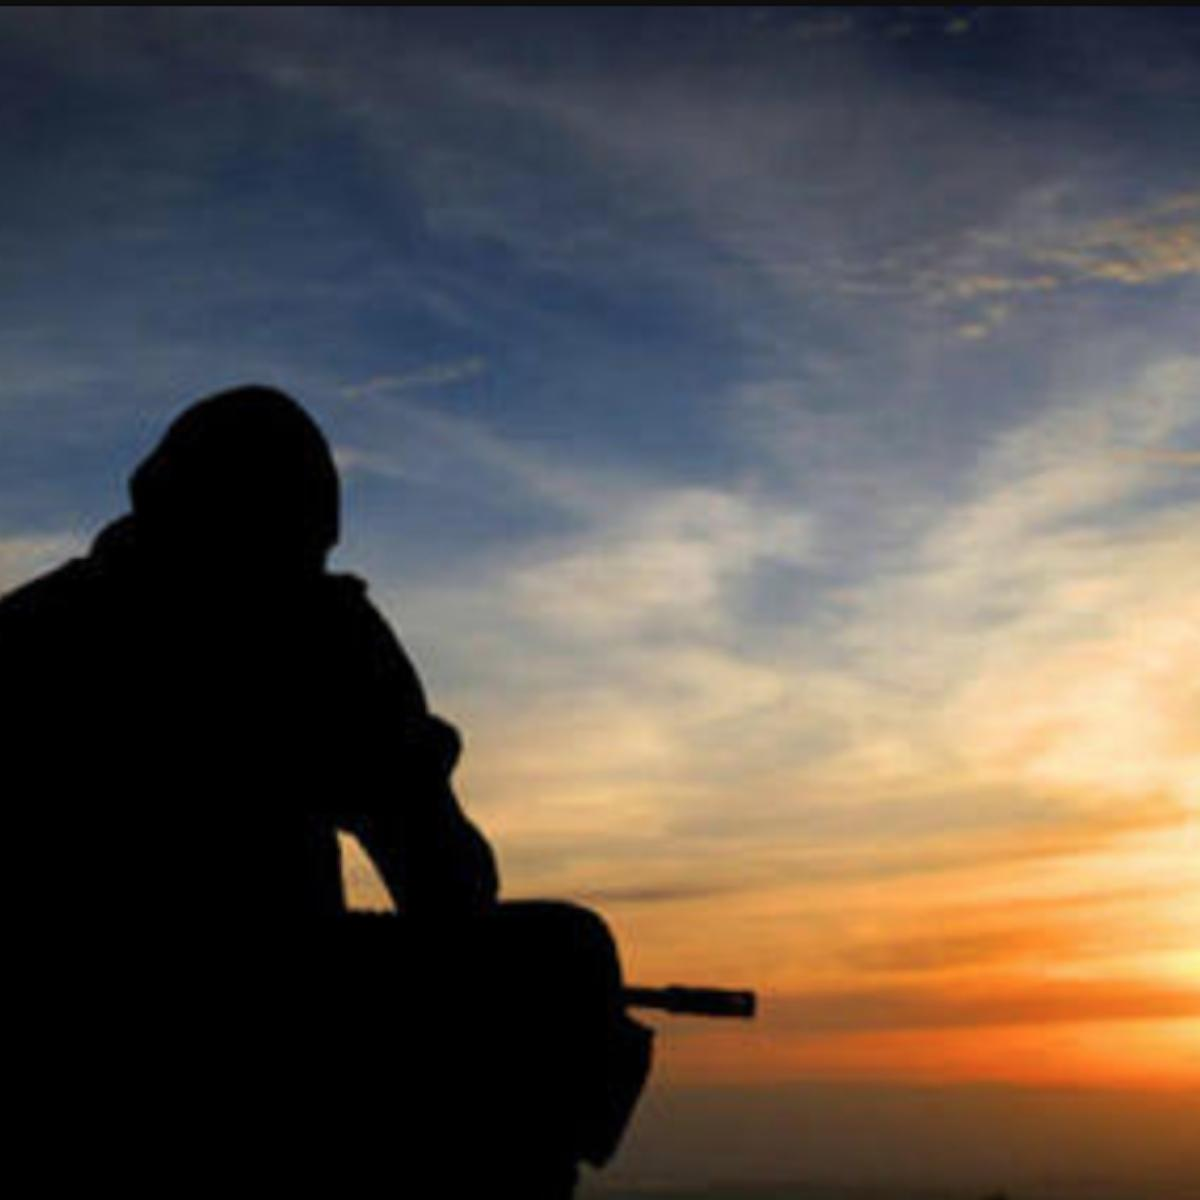 Silhouette of soldier watching sunset photo courtesy military.com